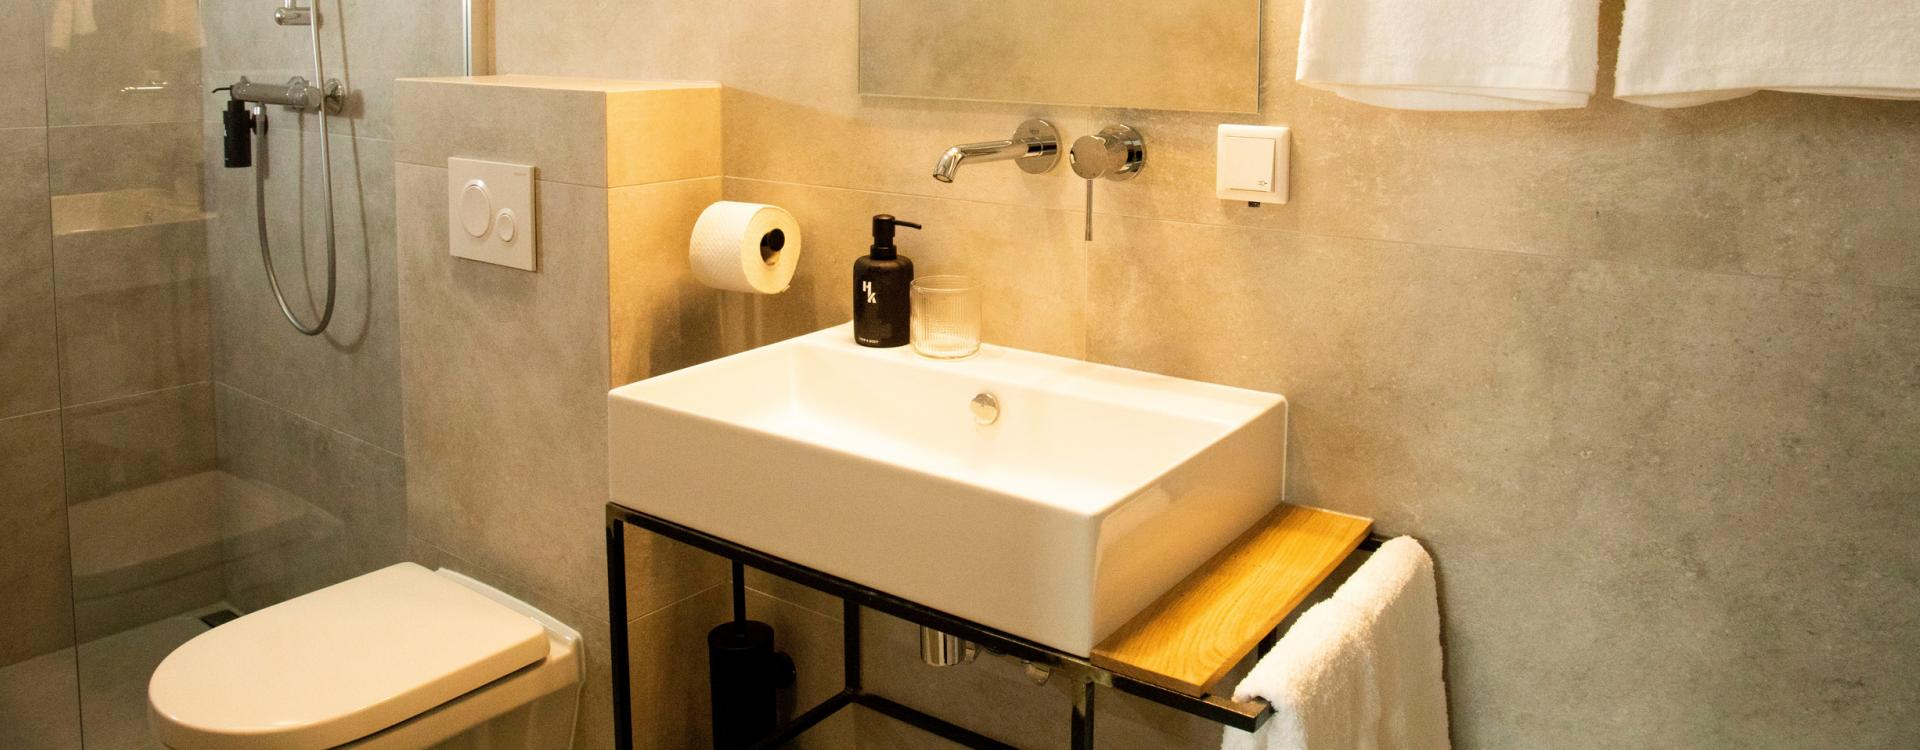 A modern bathroom with big grey tiles, a square sink, a toilet and white towels